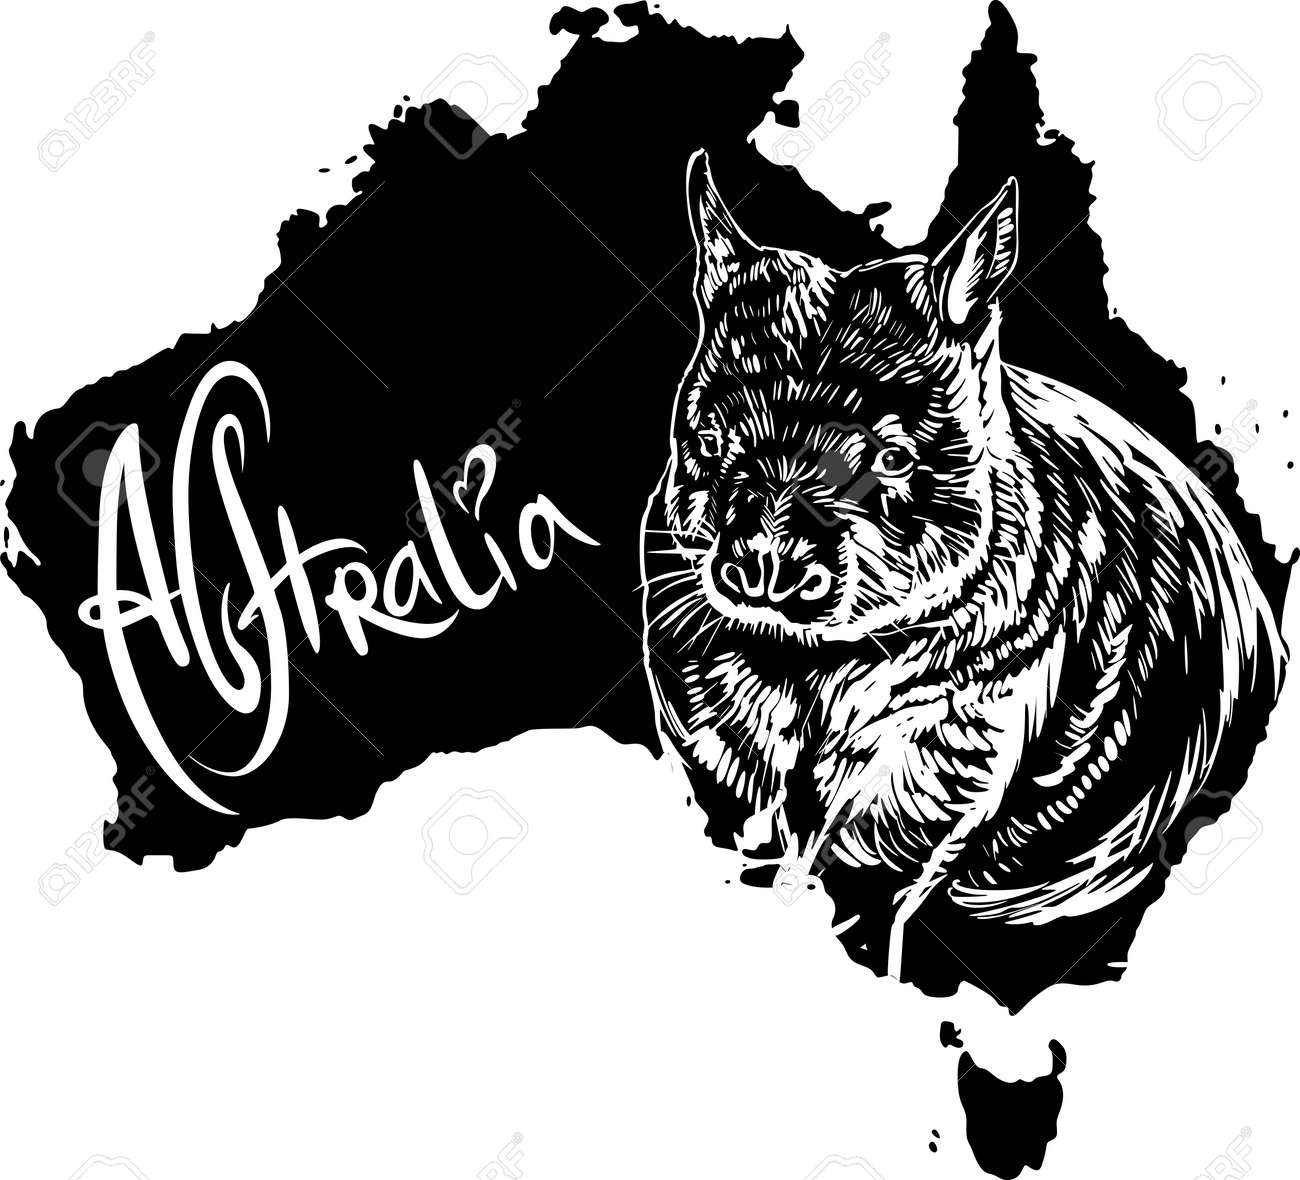 Wombat on map of Australia. Black and white vector illustration. Stock Vector - 15783358